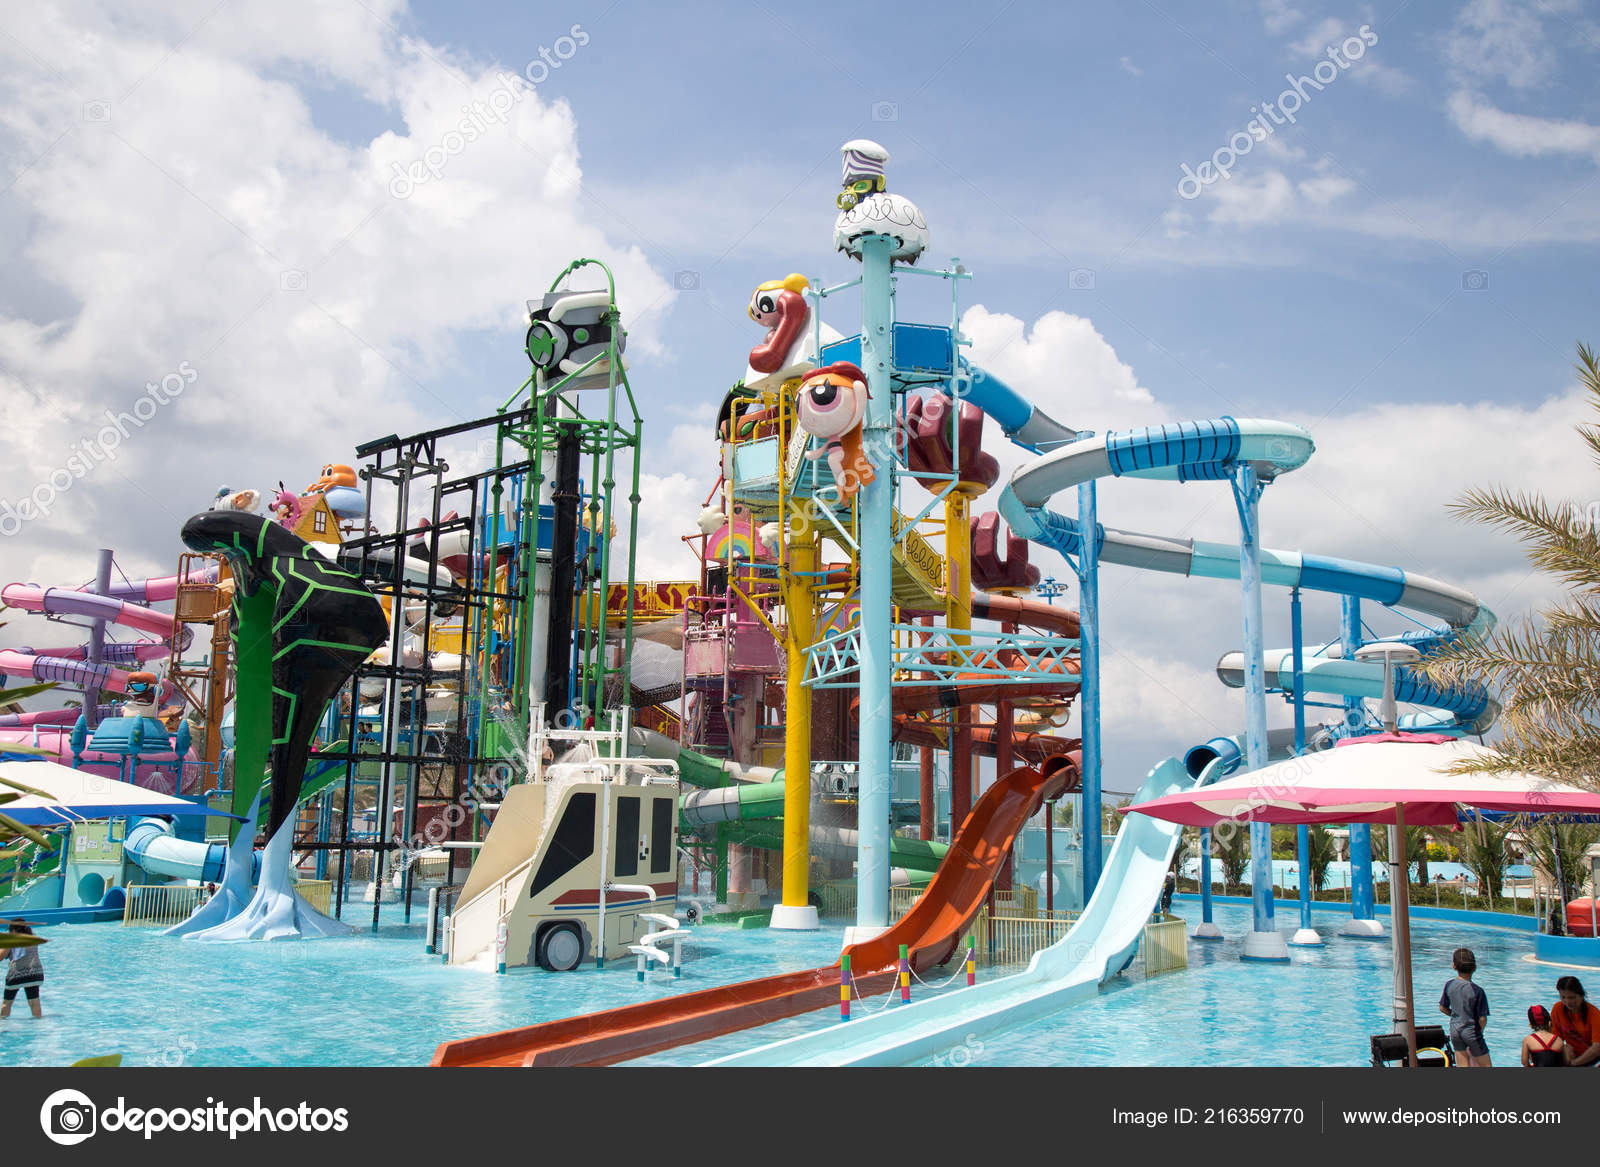 Cartoon Network Amazone Water Park Pattaya Thailand March 2017 Famous Stock Editorial Photo C Chayakorn Lot Gmail Com 216359770